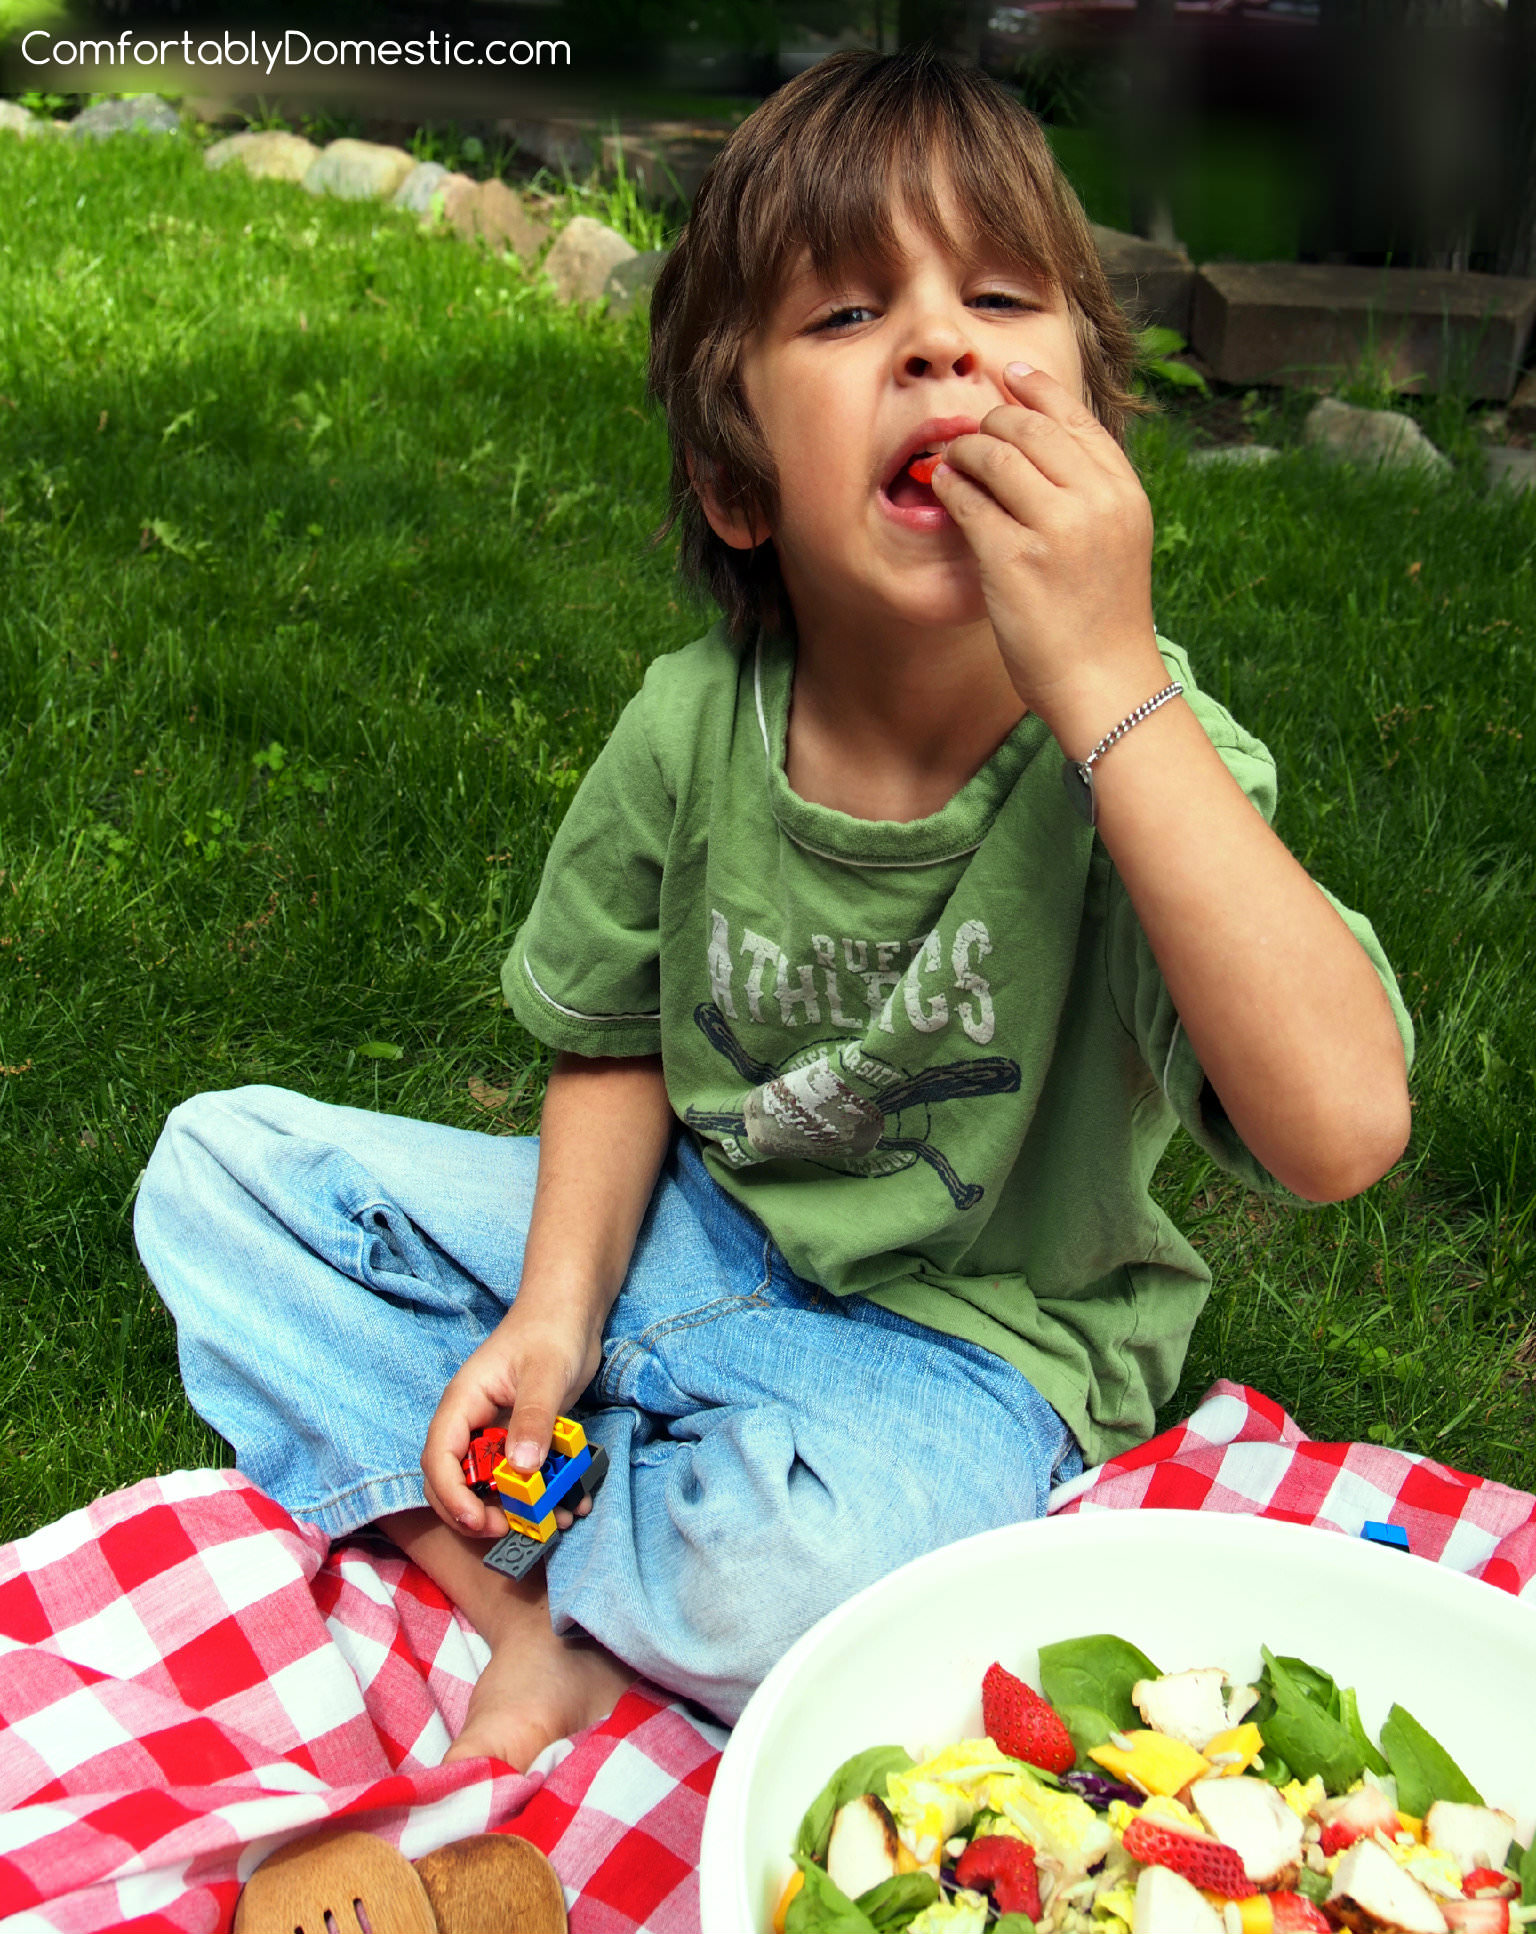 The Baby plucking strawberries out of the salad.